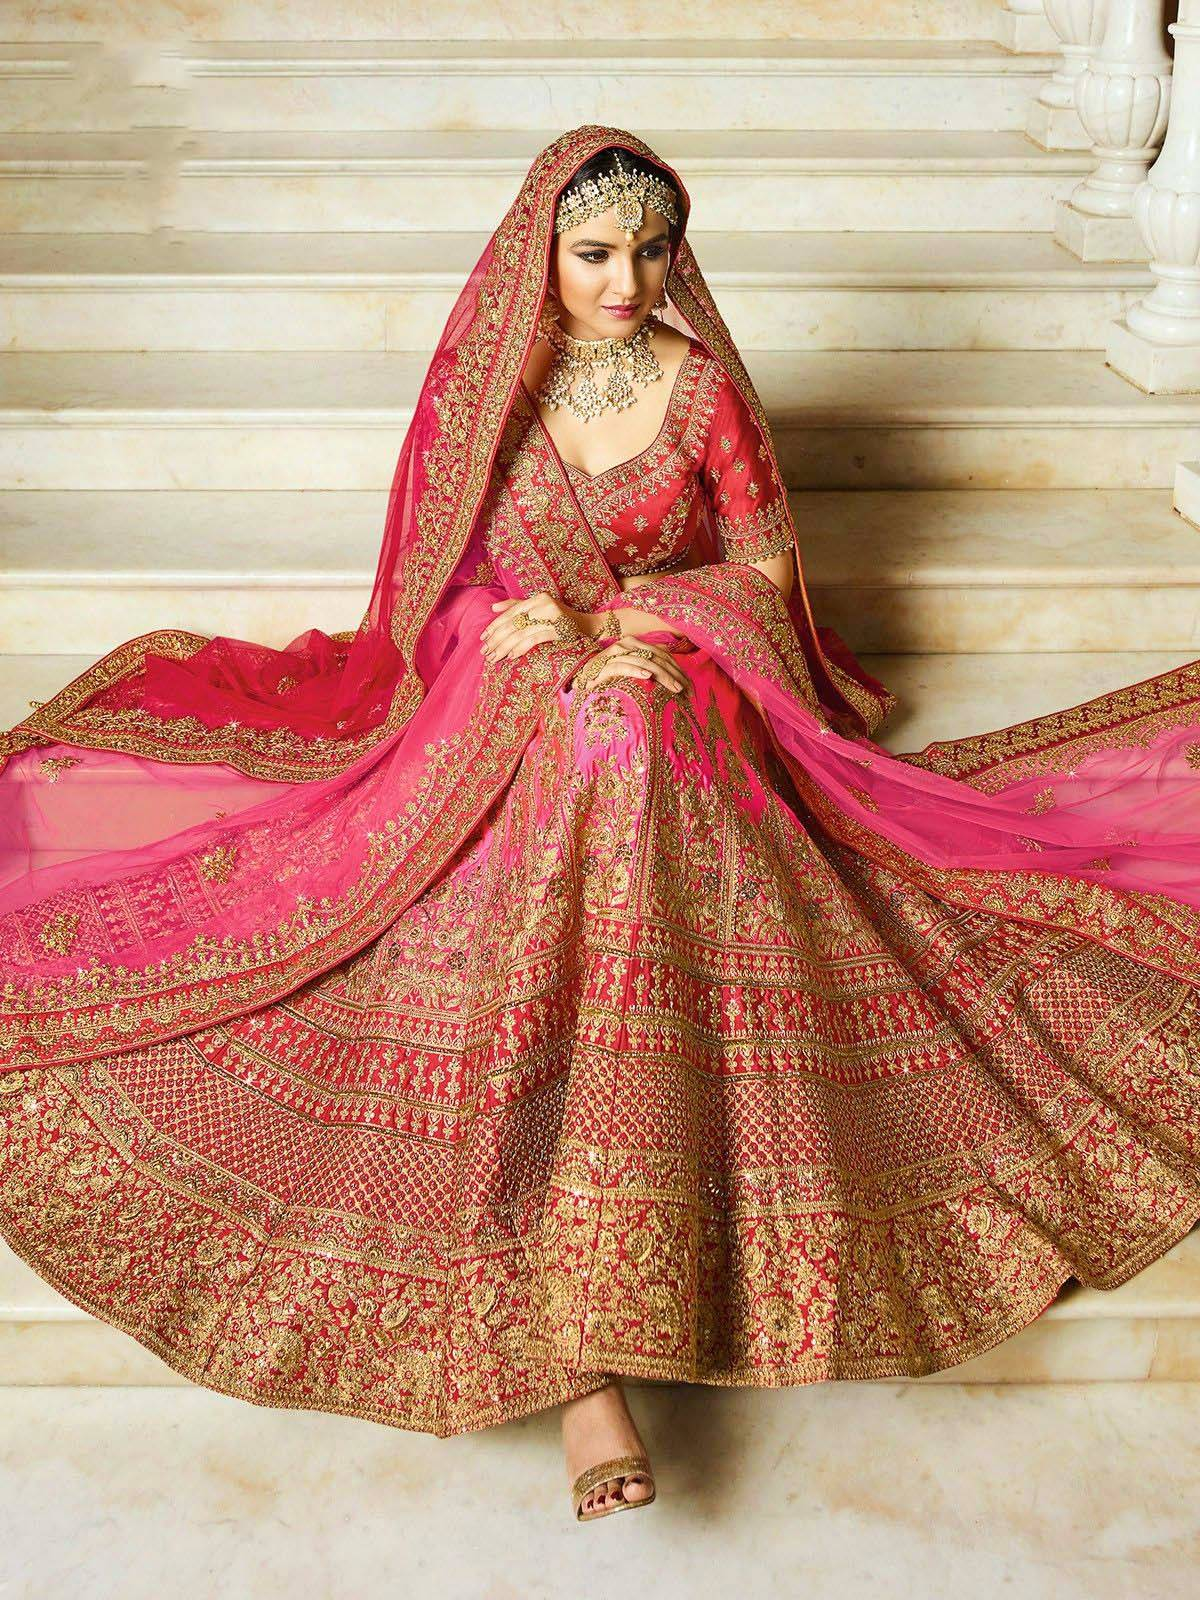 indian bride wearing lehenga choli